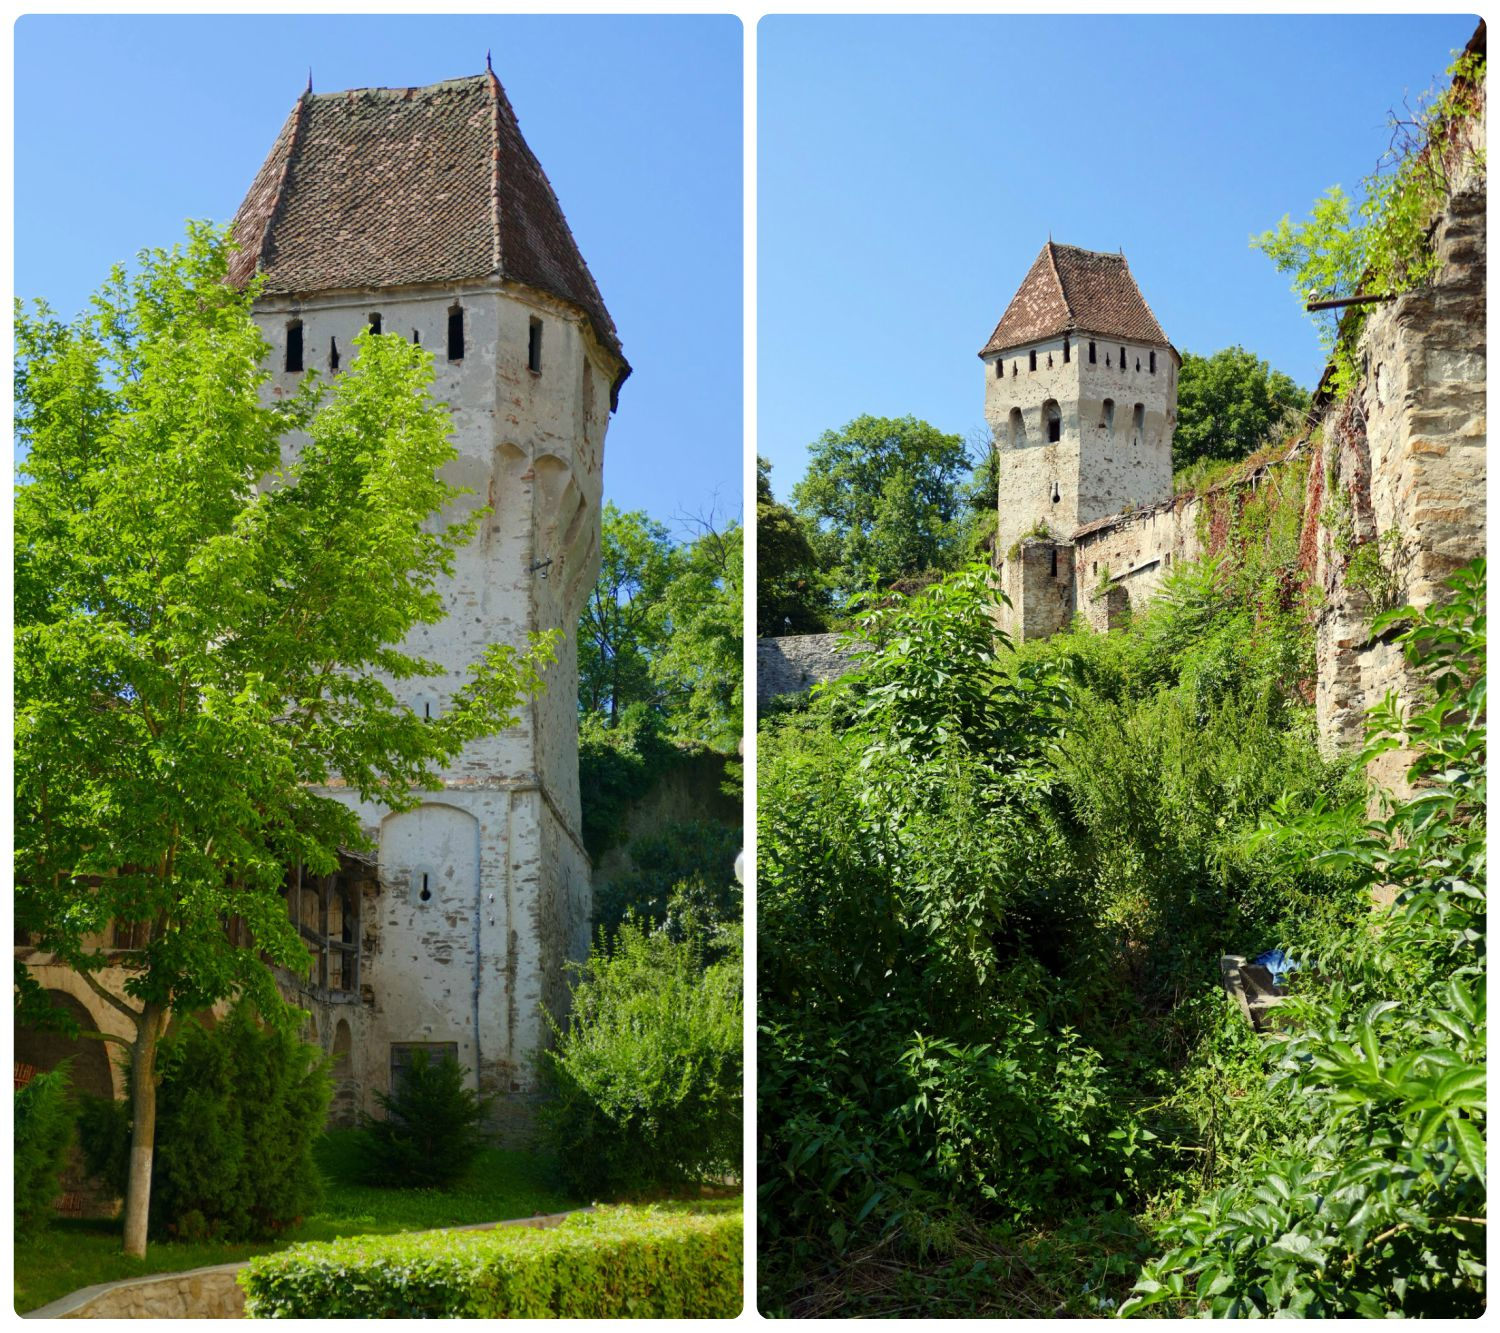 The Tinsmiths' Tower from both the exterior and interior of Sighisoara Citadel walls.